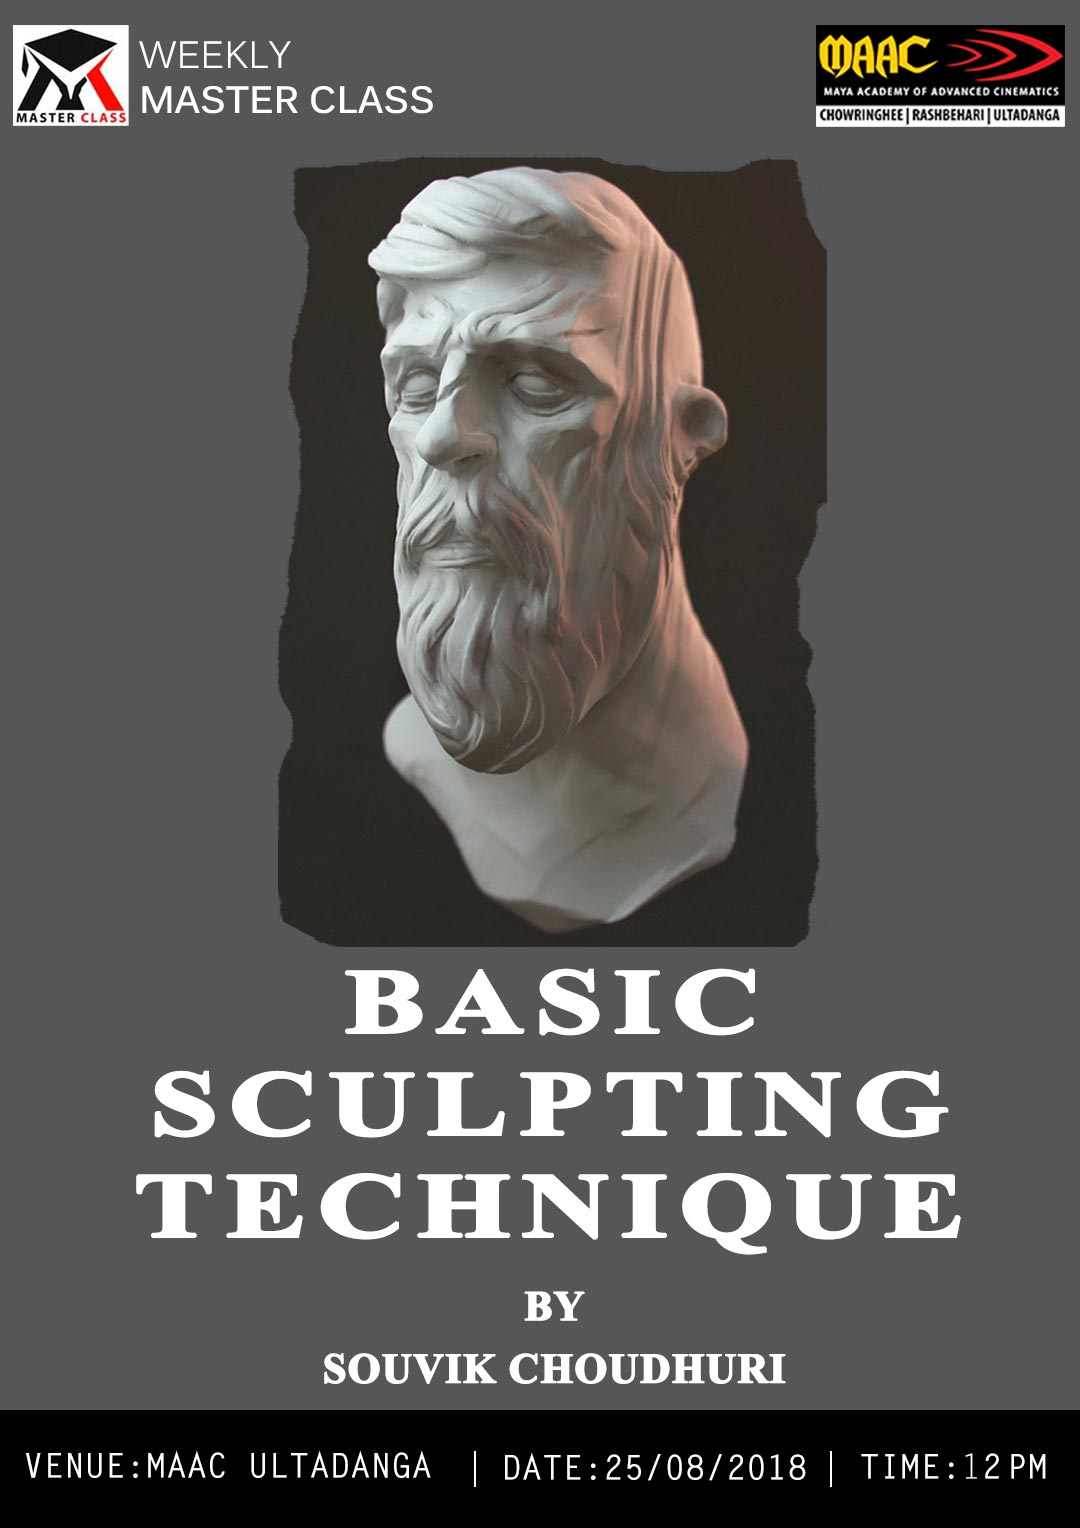 Weekly Master Class on Basic Sculpting Technique